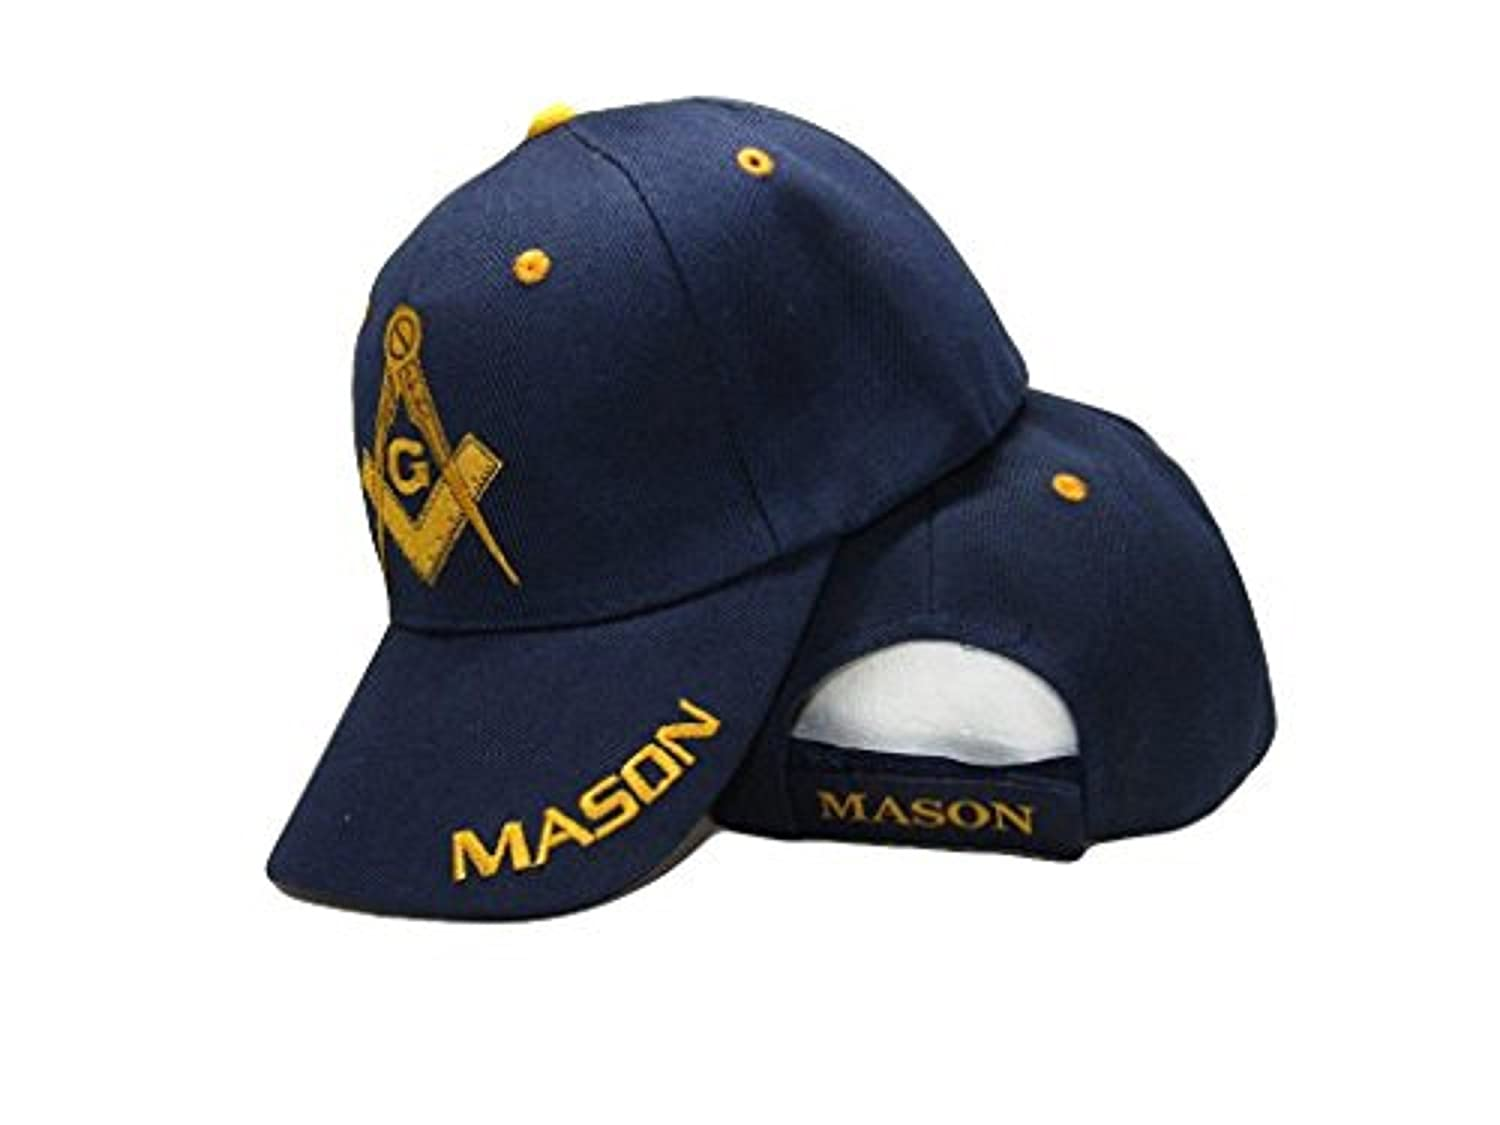 mws Blue and Gold Mason Masons Freemason Masonic Lodge Ball Cap 3D  Embroidered Hat at Amazon Men s Clothing store  b2cd5e49943